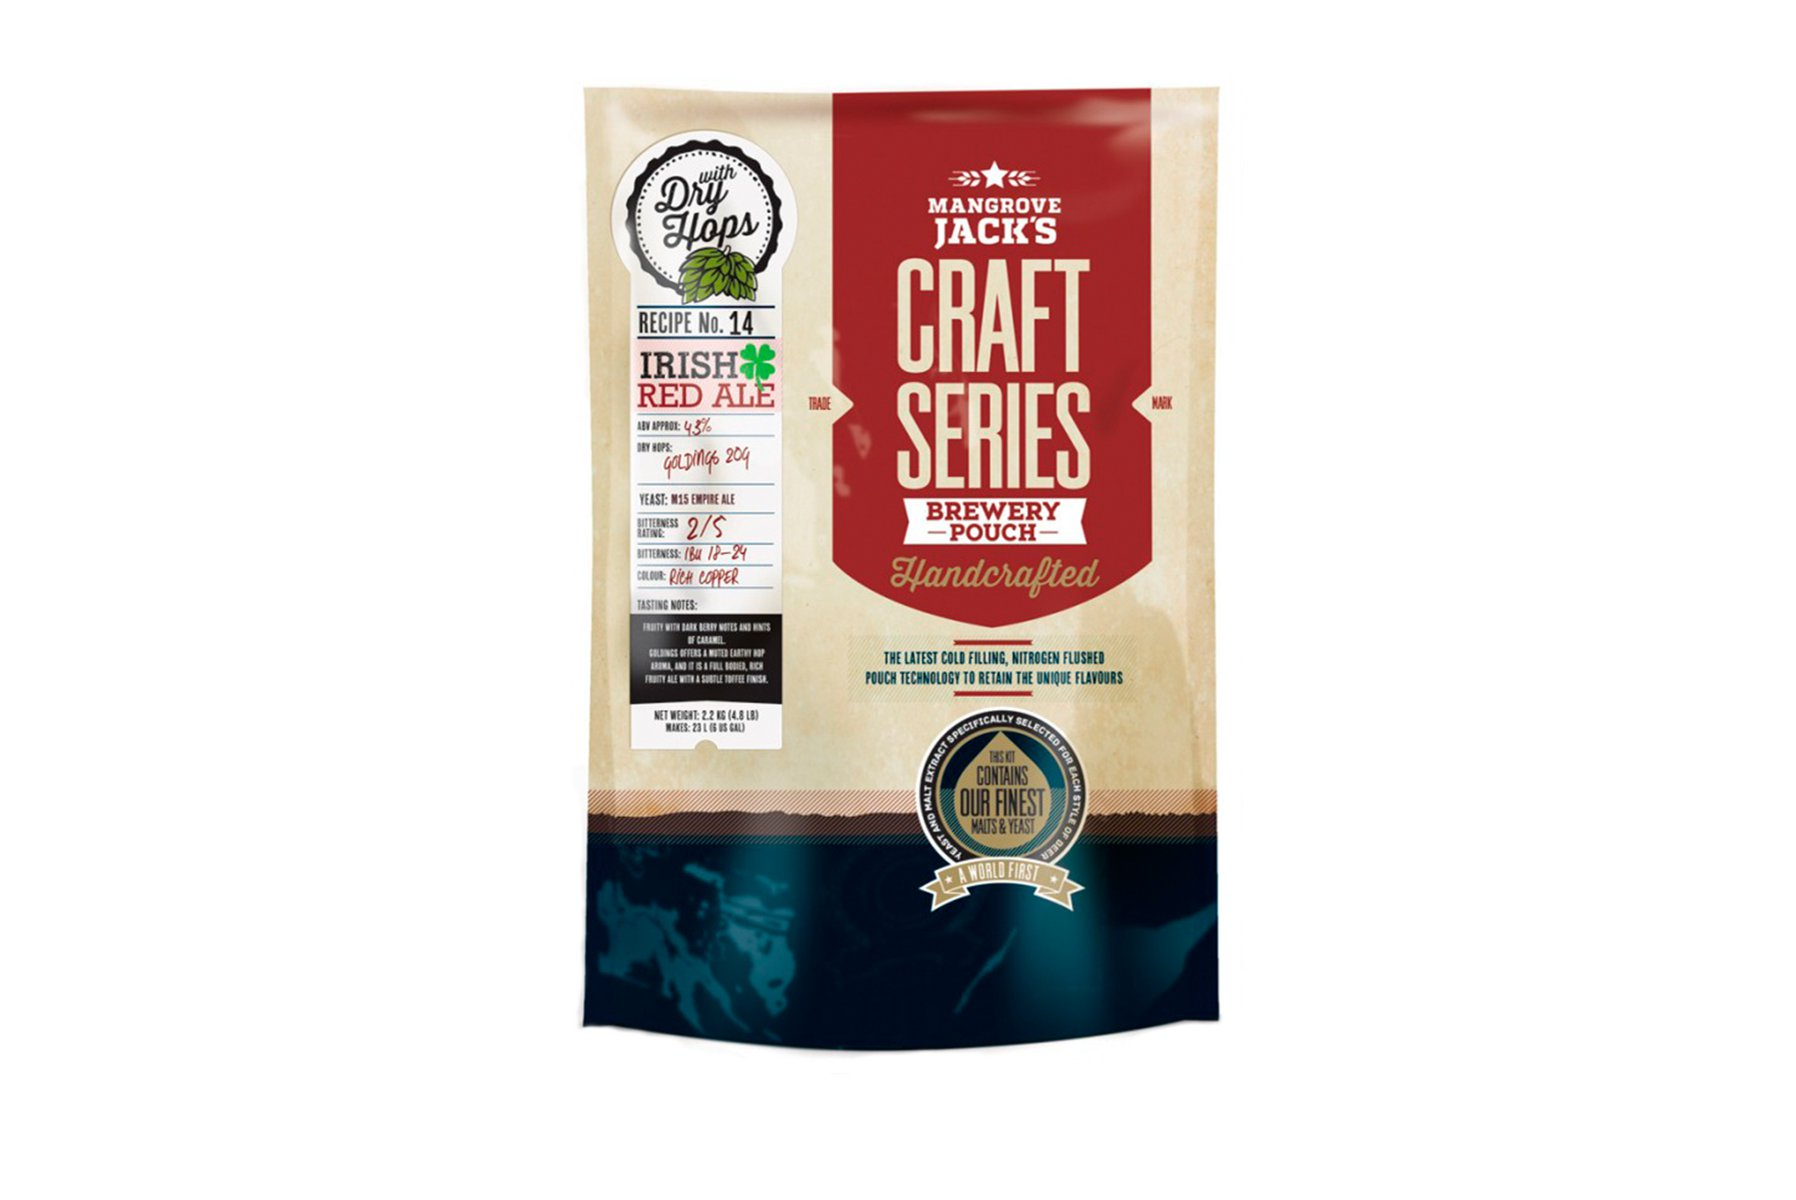 Купить Mangrove Jack's Craft Series Irish Red Ale 2,2 кг в Воронеже